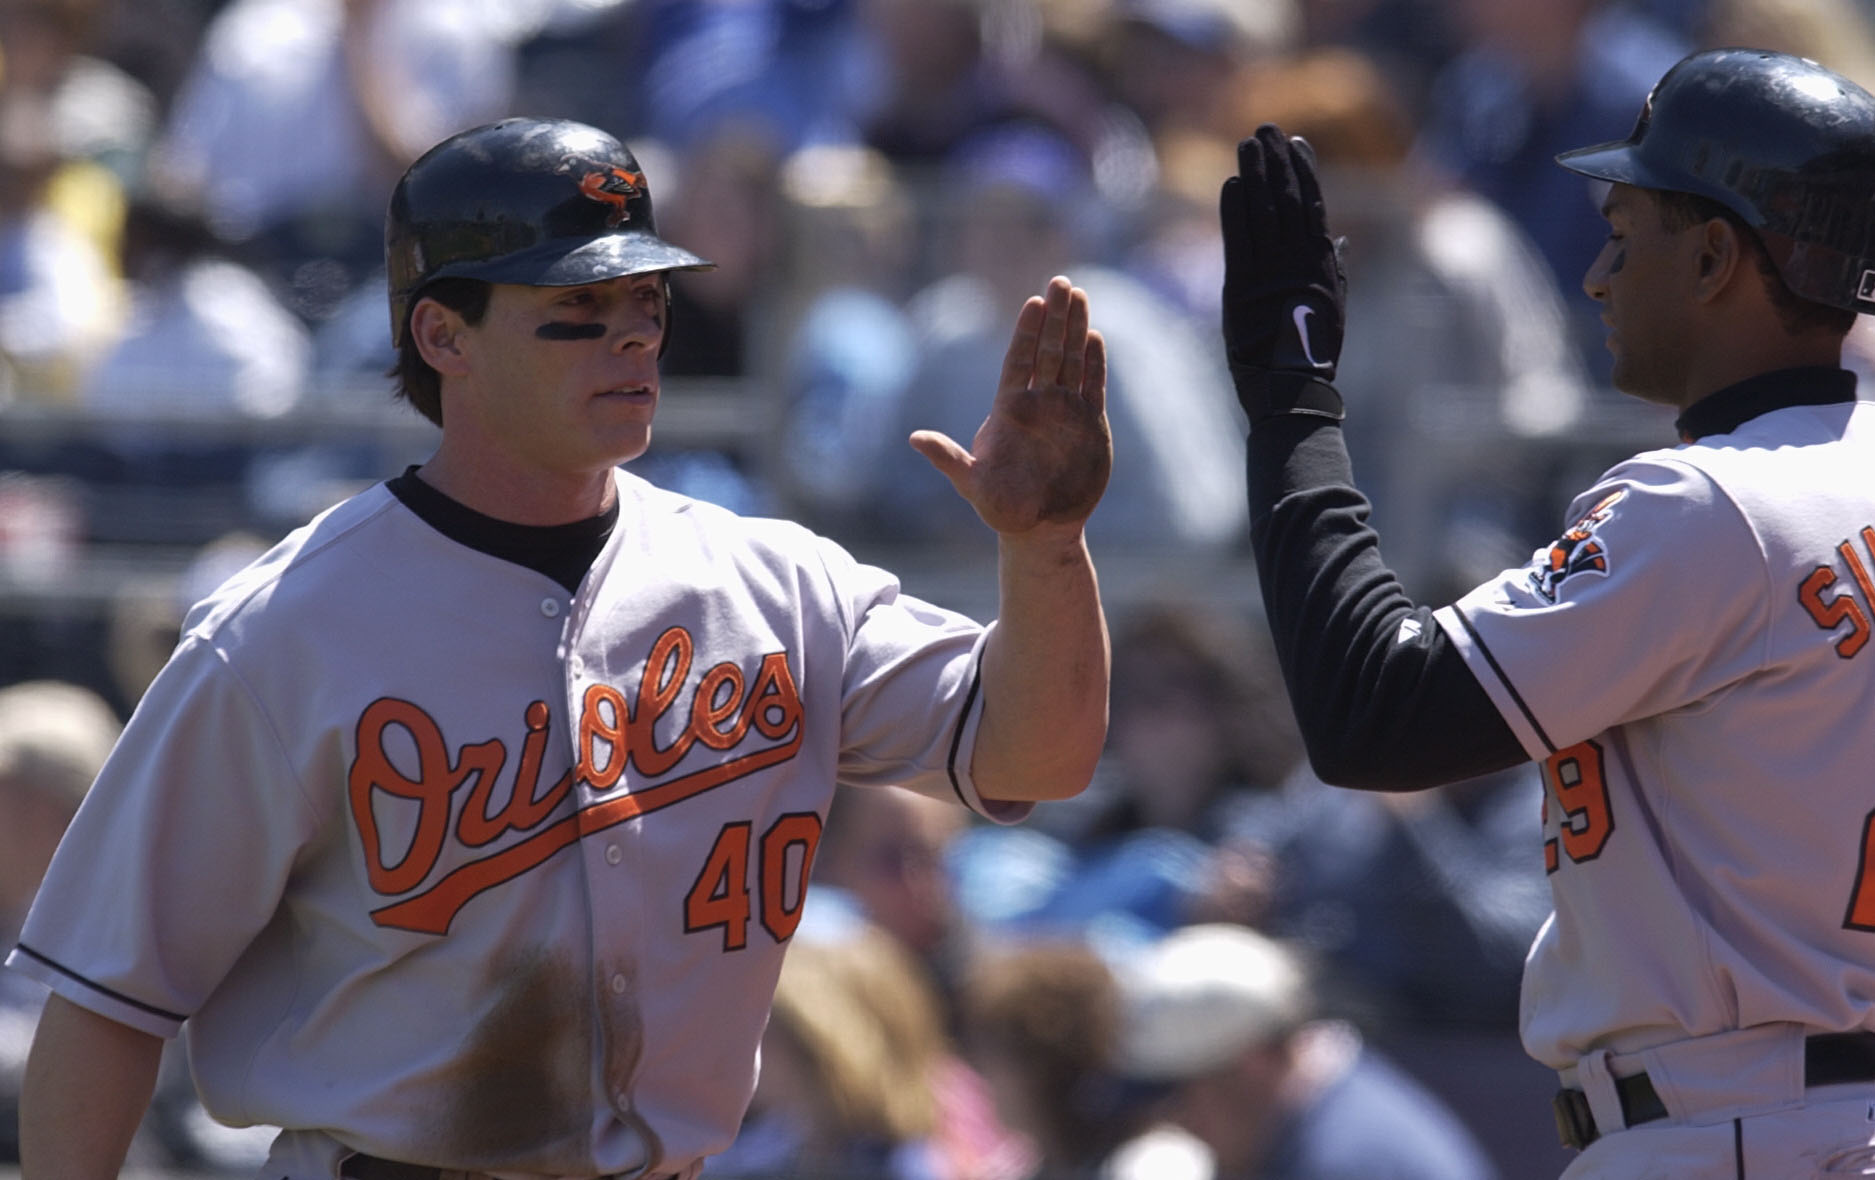 Marty Cordova won the AL Rookie of the Year Award and played nine seasons. But he's best known for a tanning incident gone wrong in Baltimore.